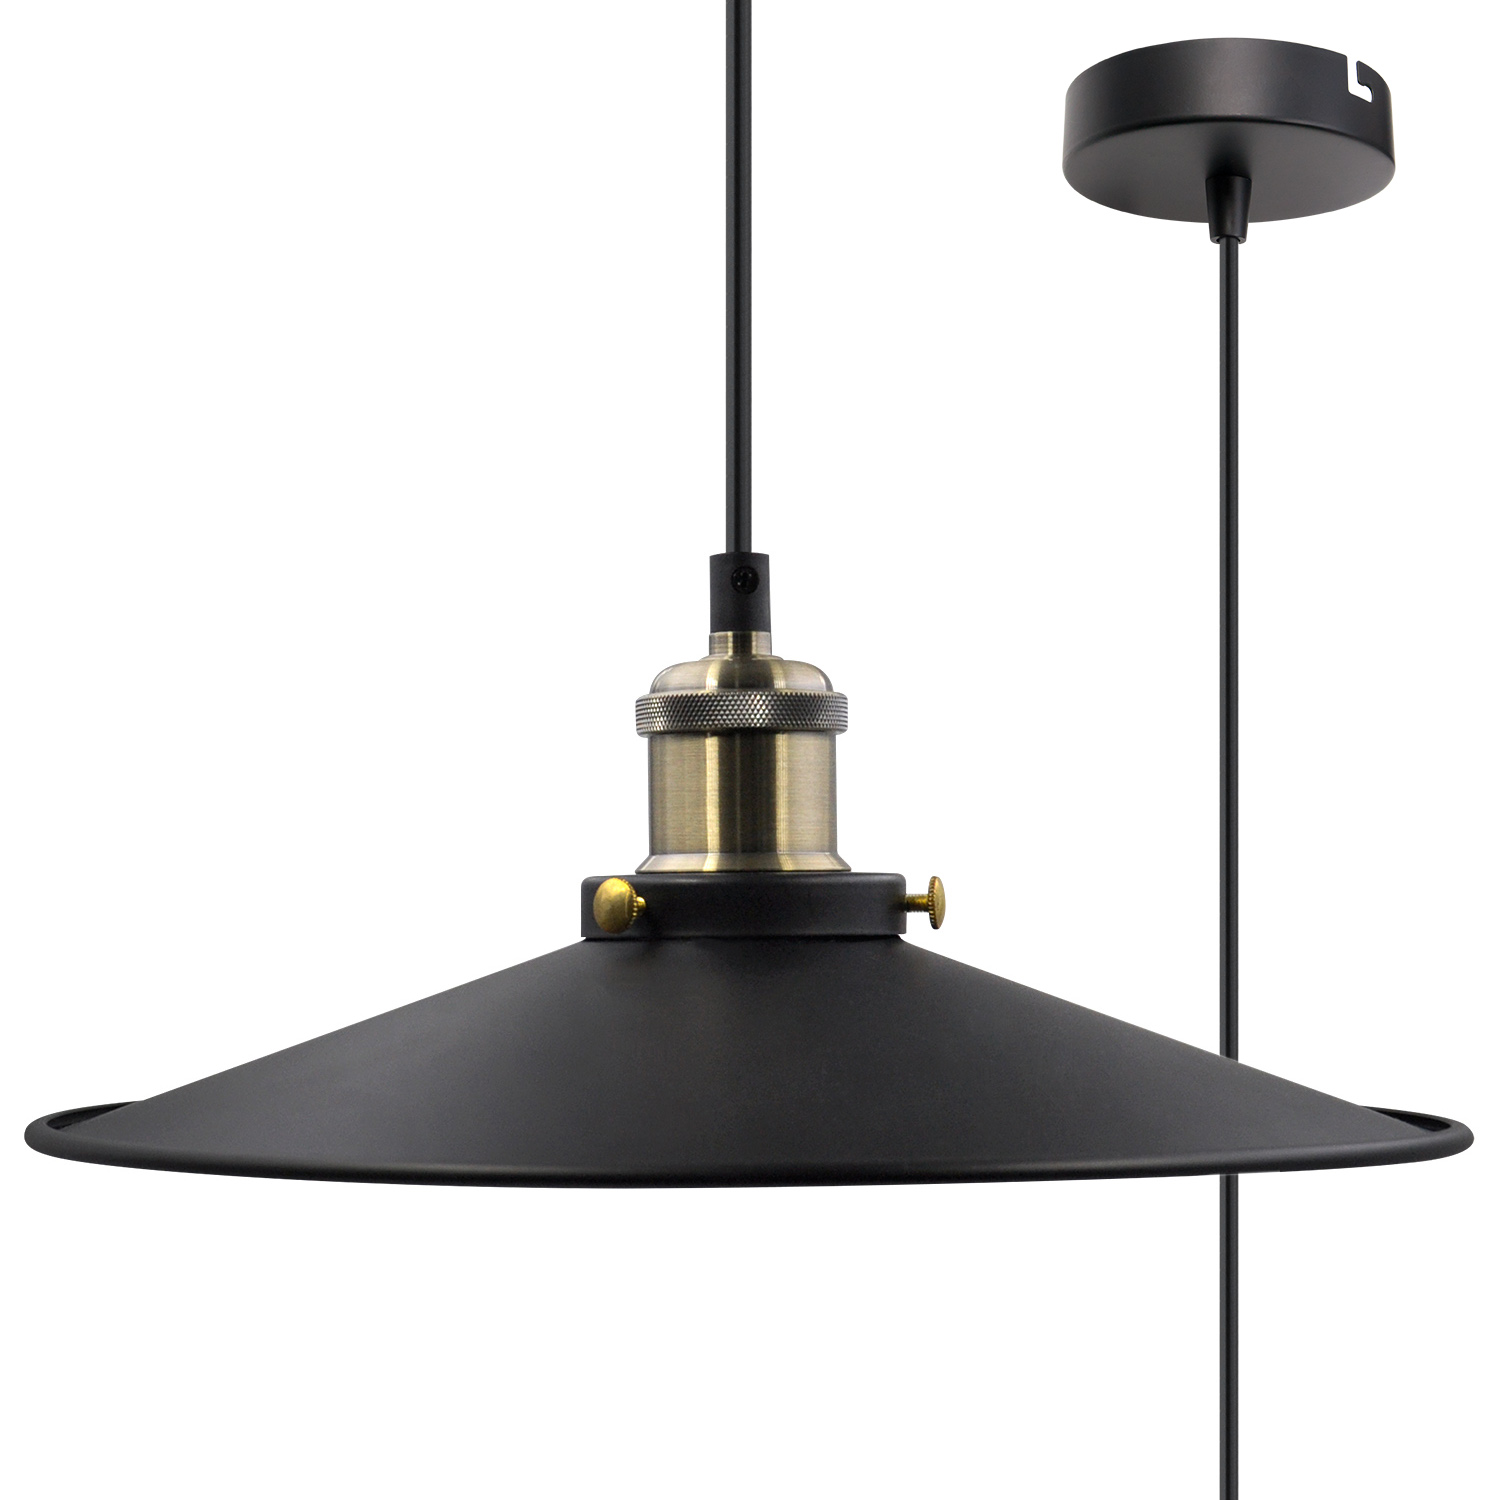 Black Pendant Light Shade Vintage Metal Ceiling Hanging Lamp Shade Pendant  Light Fixture for Kitchen Dining Room Restaurant Maximum 2 Meters ...